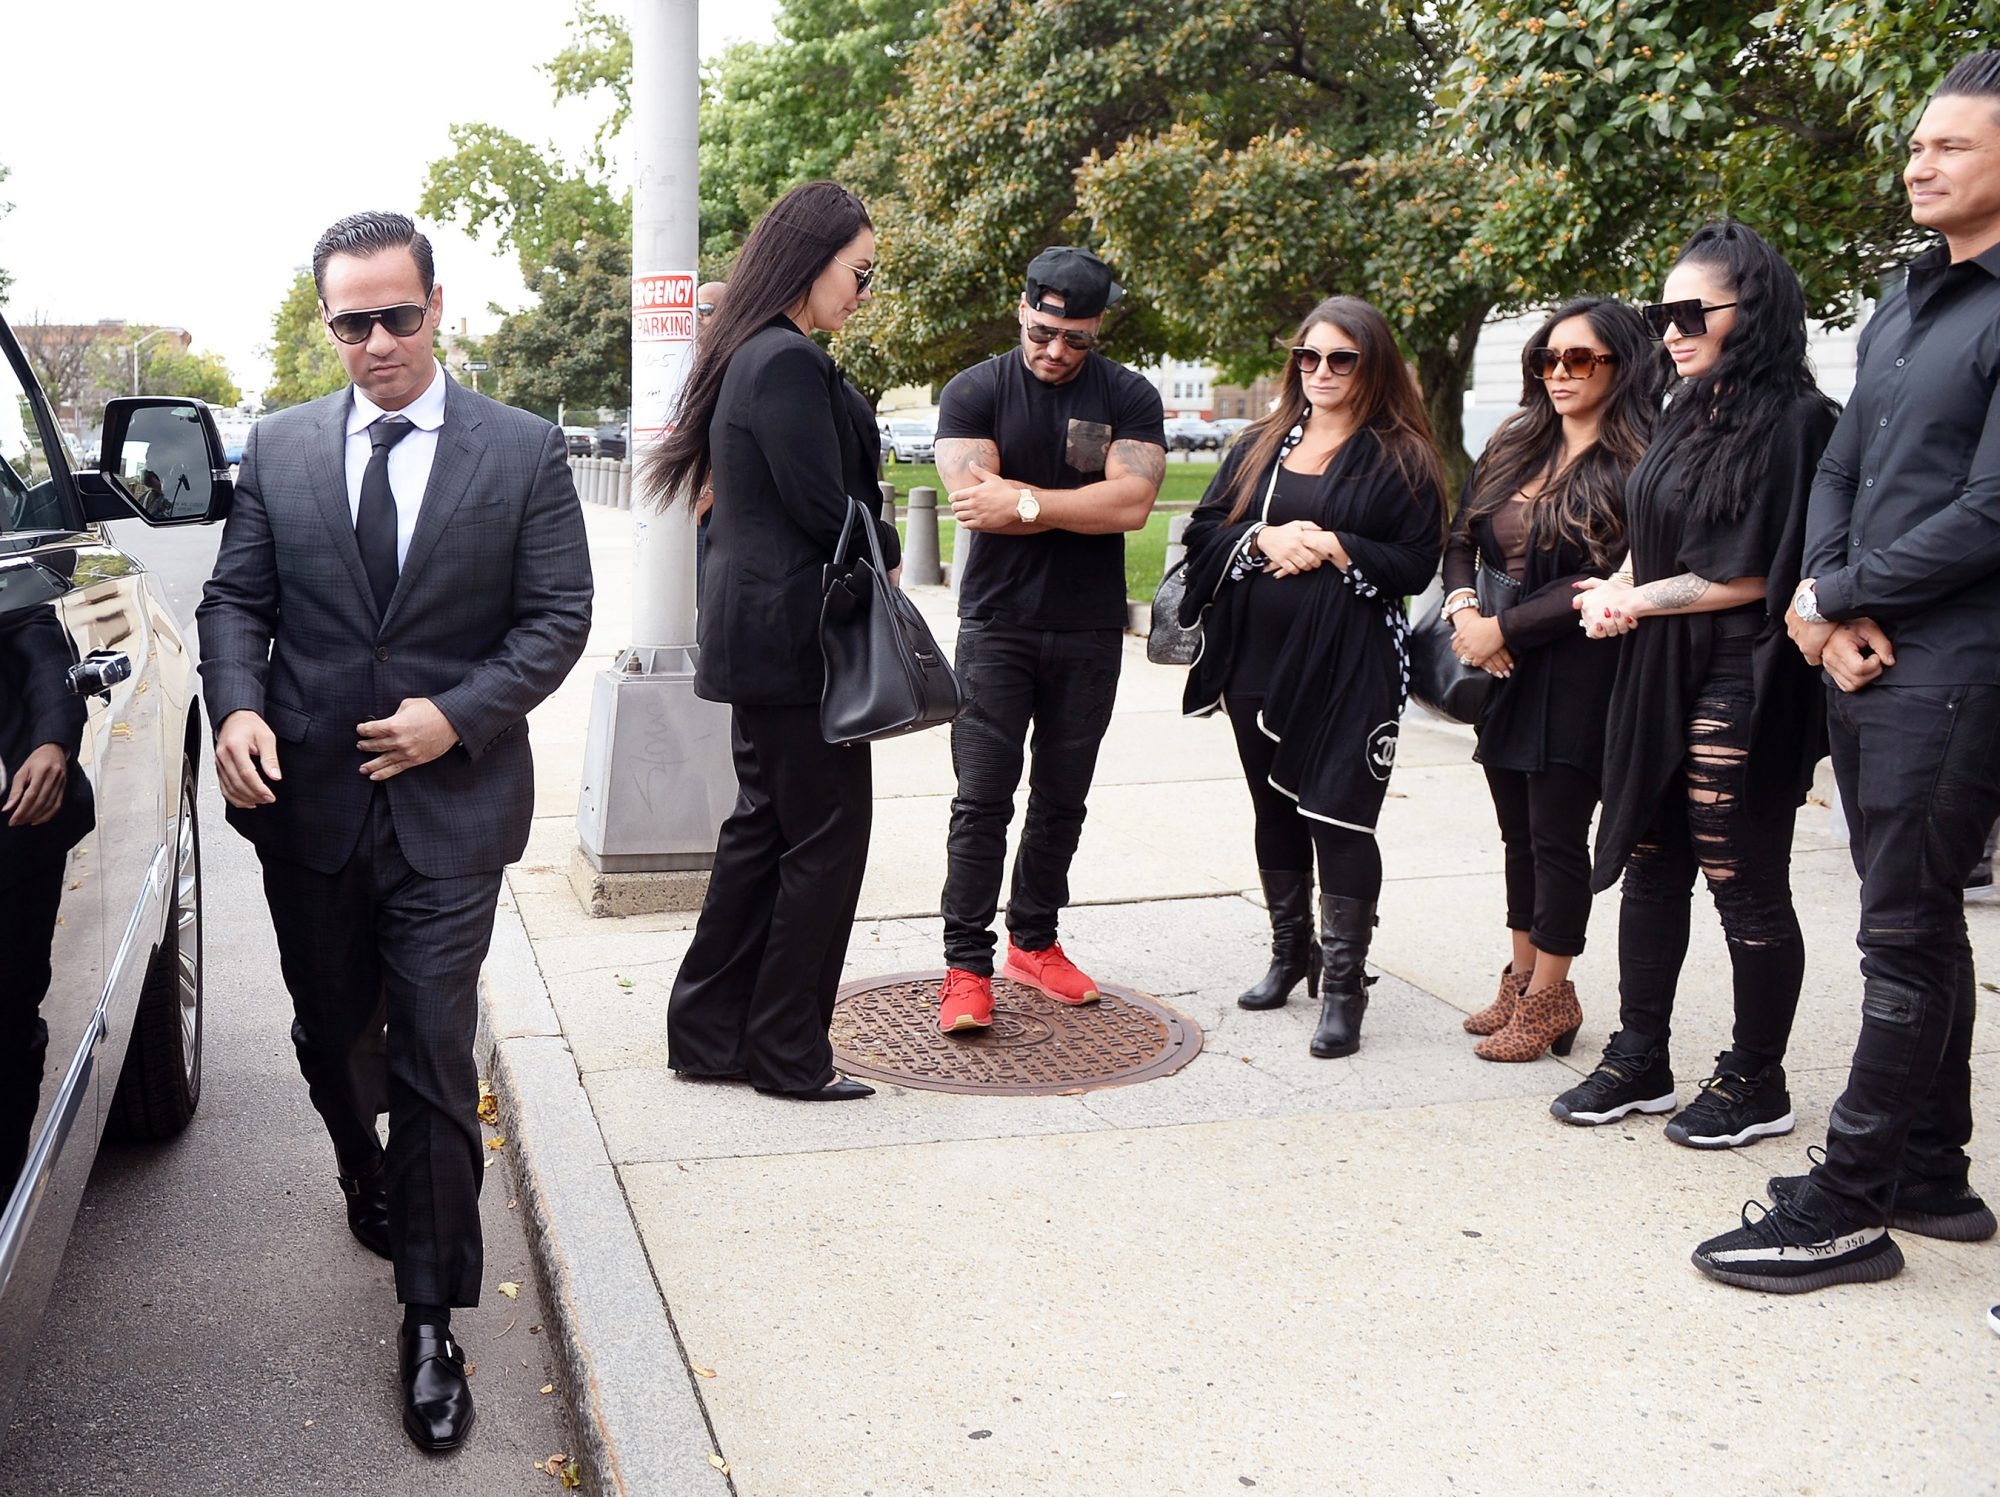 Mike (The Situation) Sorrentino and his girlfriend are photogaphed arriving at Newwark Nj court were he is to be sentenced for tax evasion, All Jersey shore members showed up to support him also